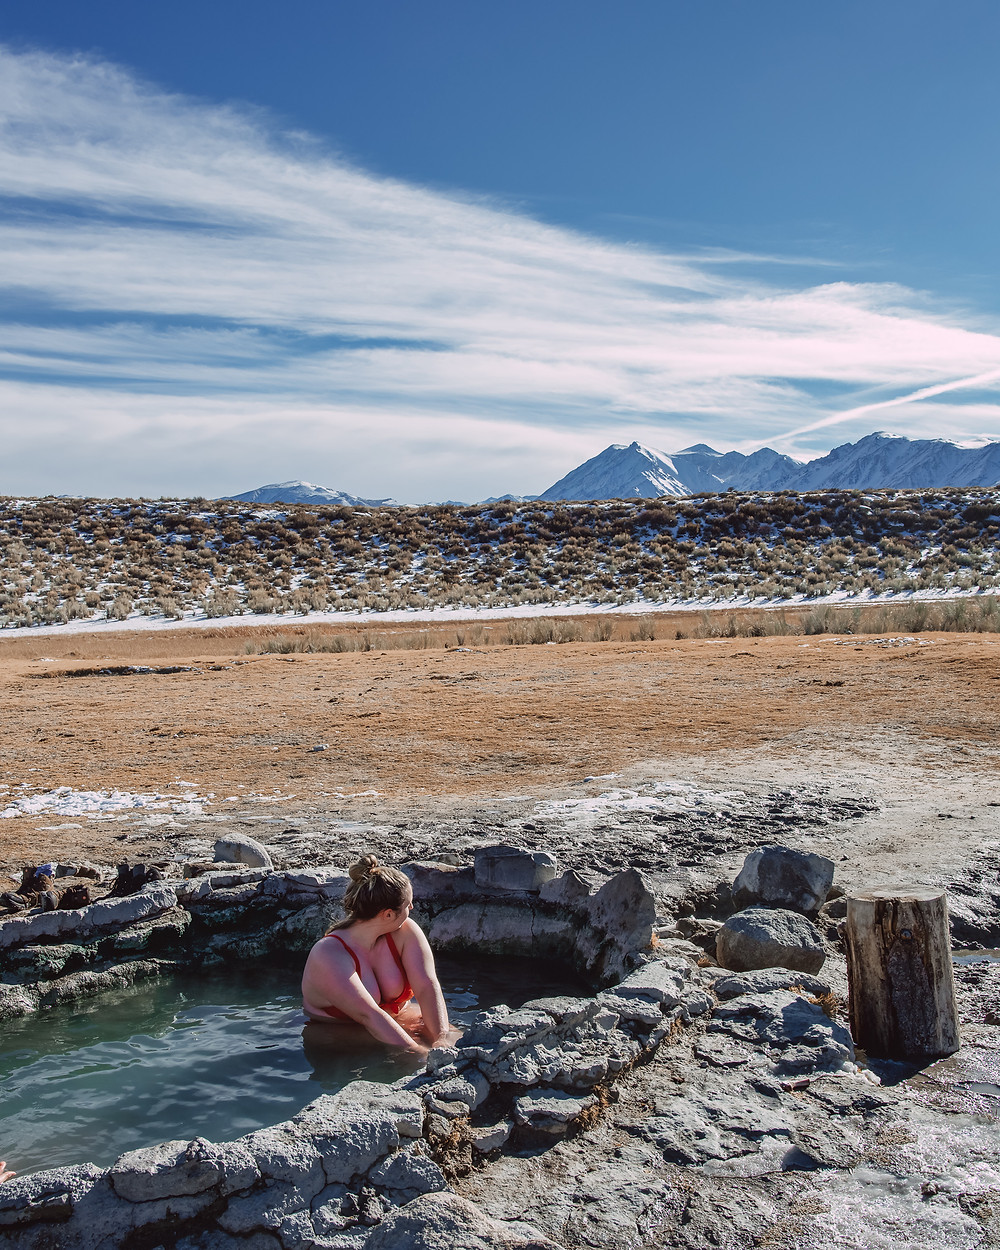 Soaking in Crab Cooker Hot Springs off HWY 395 in Mammoth